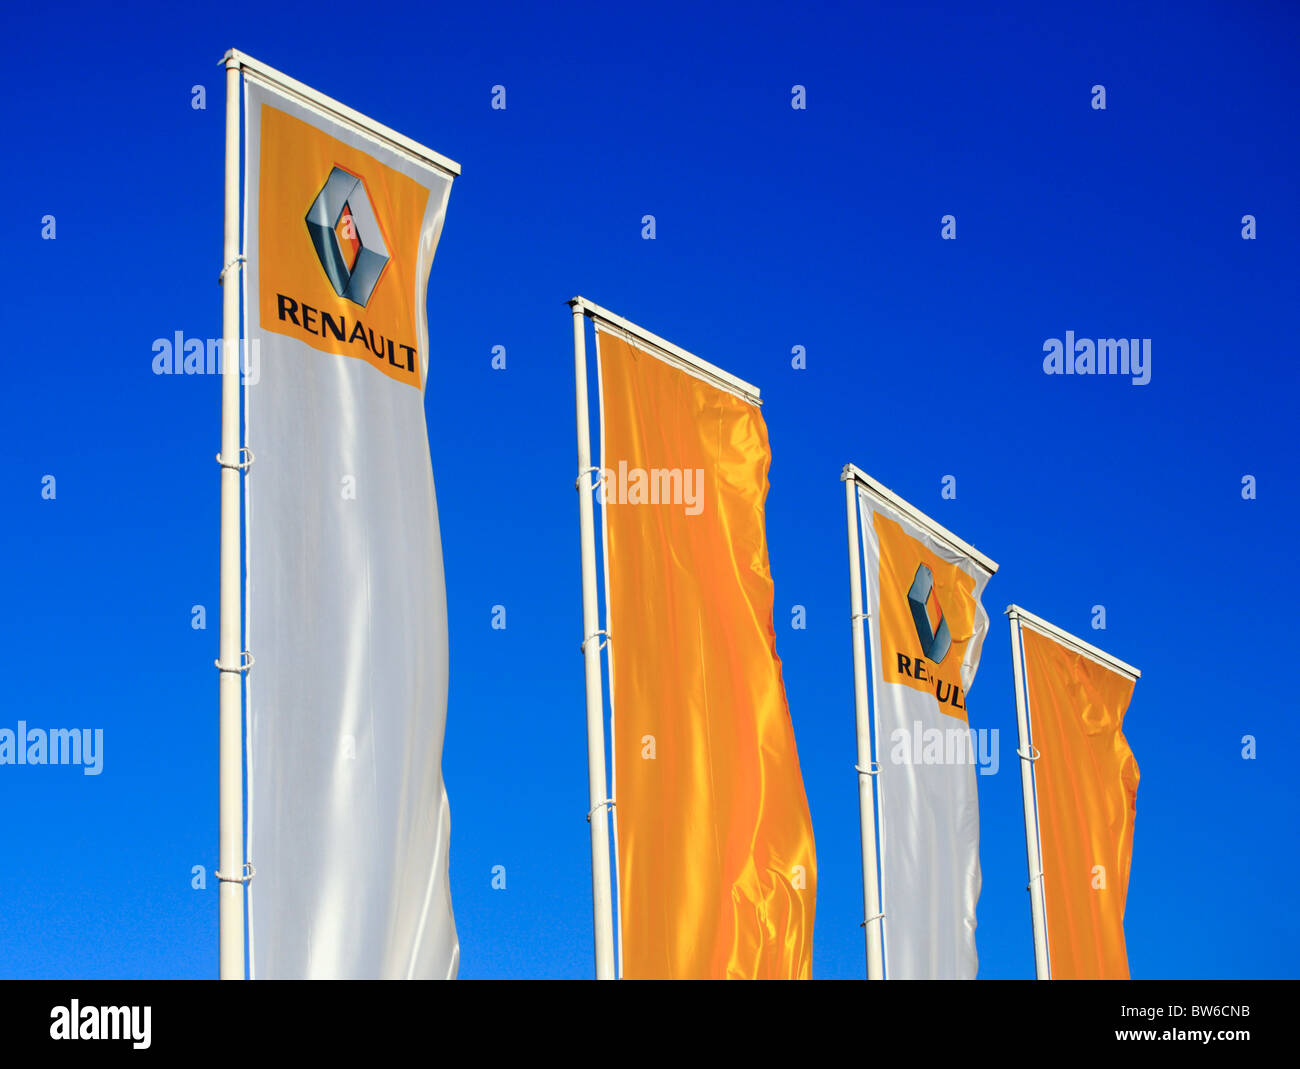 Cars Showroom Stock Photos & Cars Showroom Stock Images ...